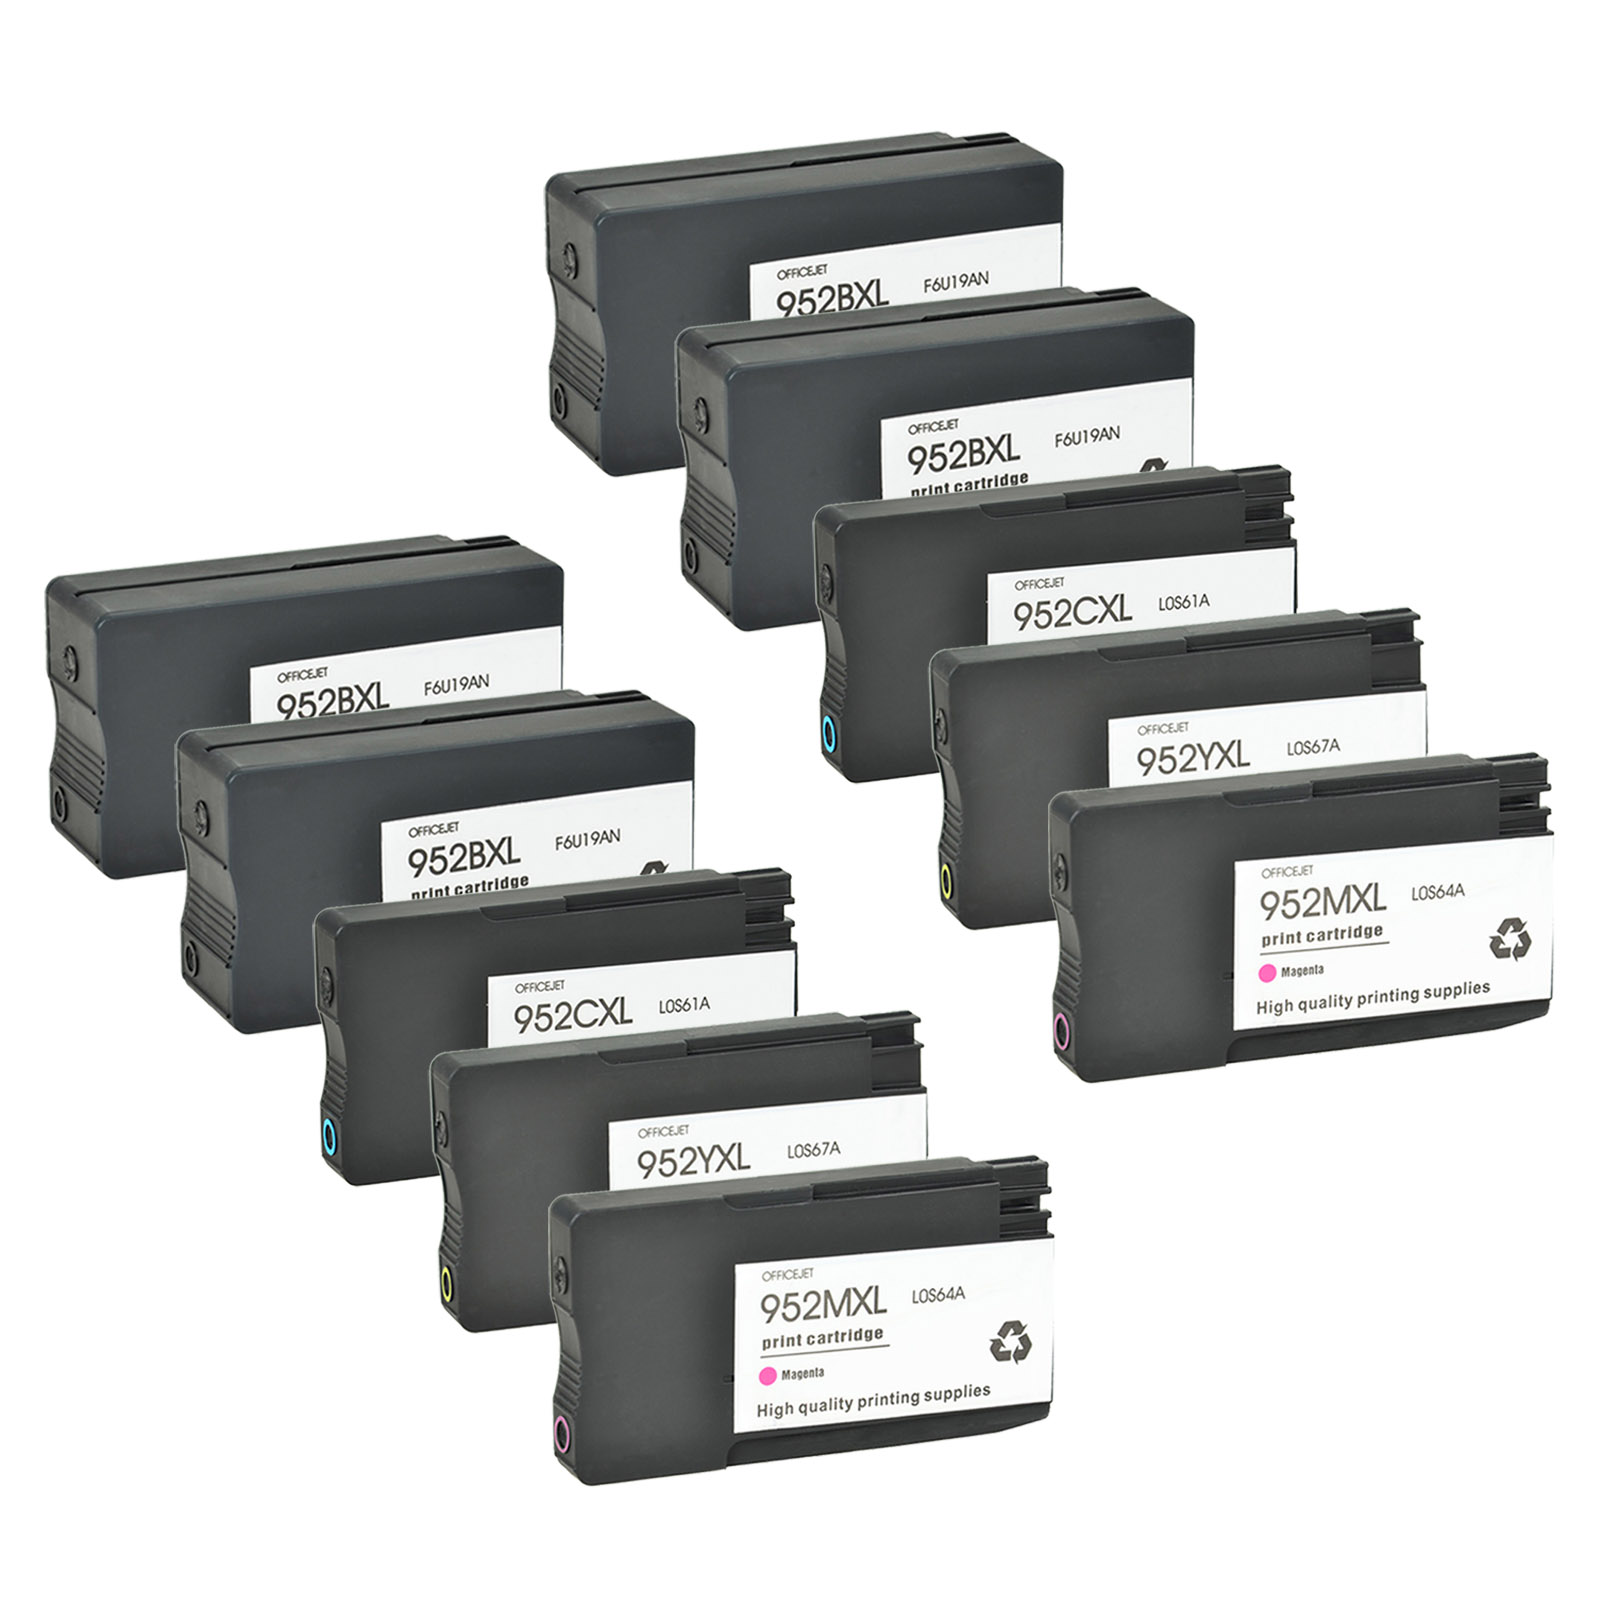 952XL Ink Cartridges For HP Officejet Pro 8210 8702 8714 8717 8718 10PK Reman